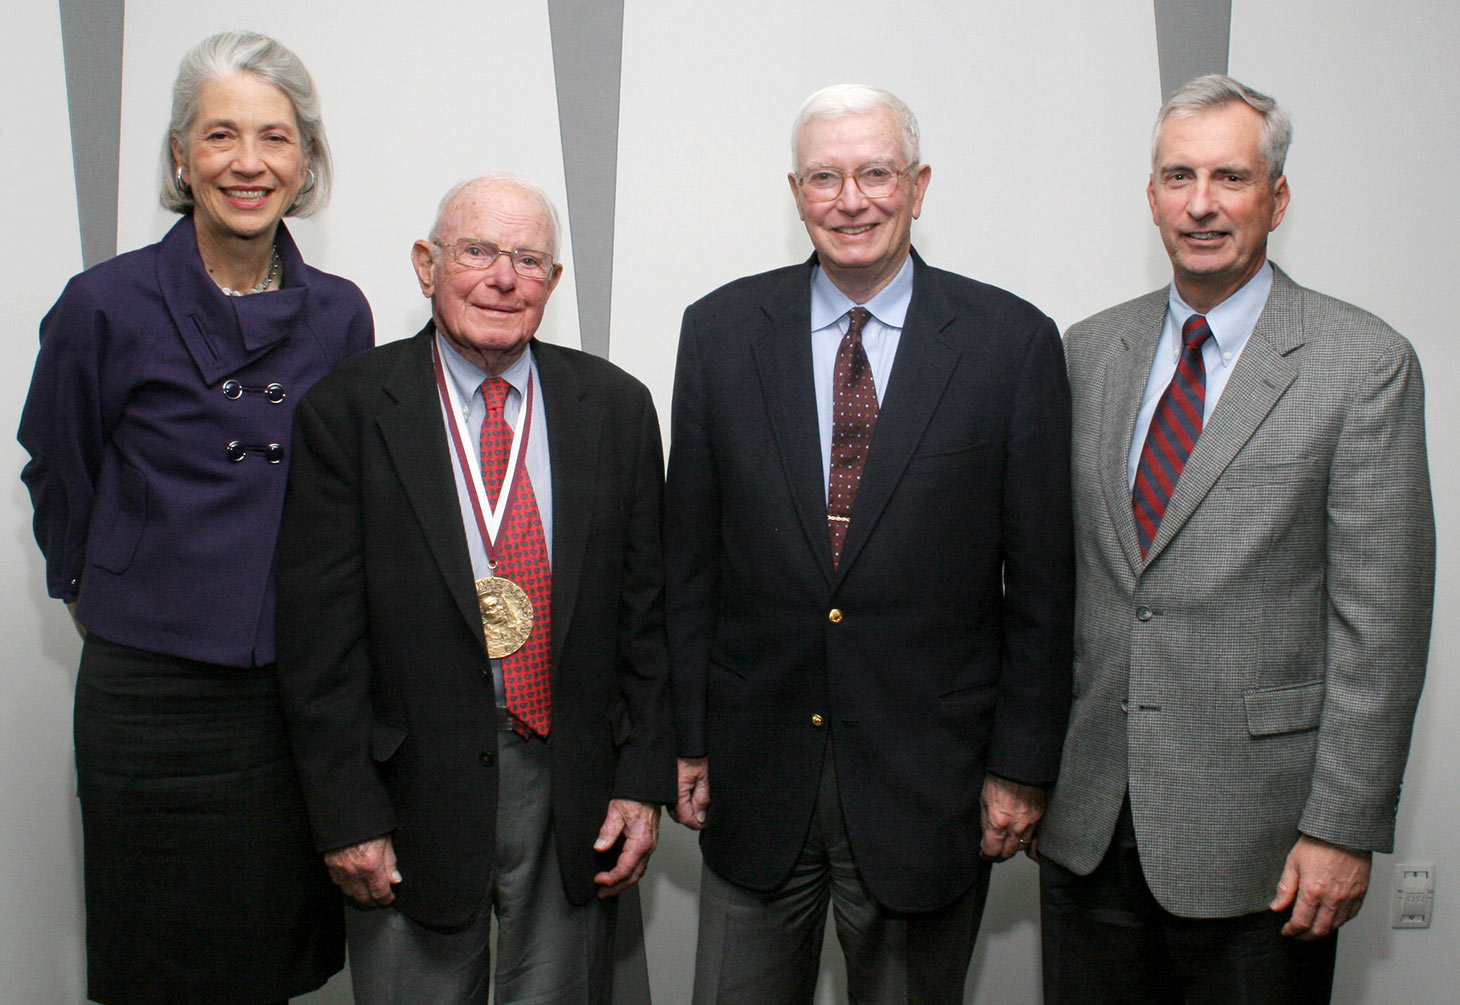 In 2008, Kinney, wearing his just-awarded Benjamin Mays Medal, poses with then-President Elaine Tuttle Hansen and his successors as chairs of the Board of Trustees: Jim Moody '53 (second from right) and Joe Willett '73.